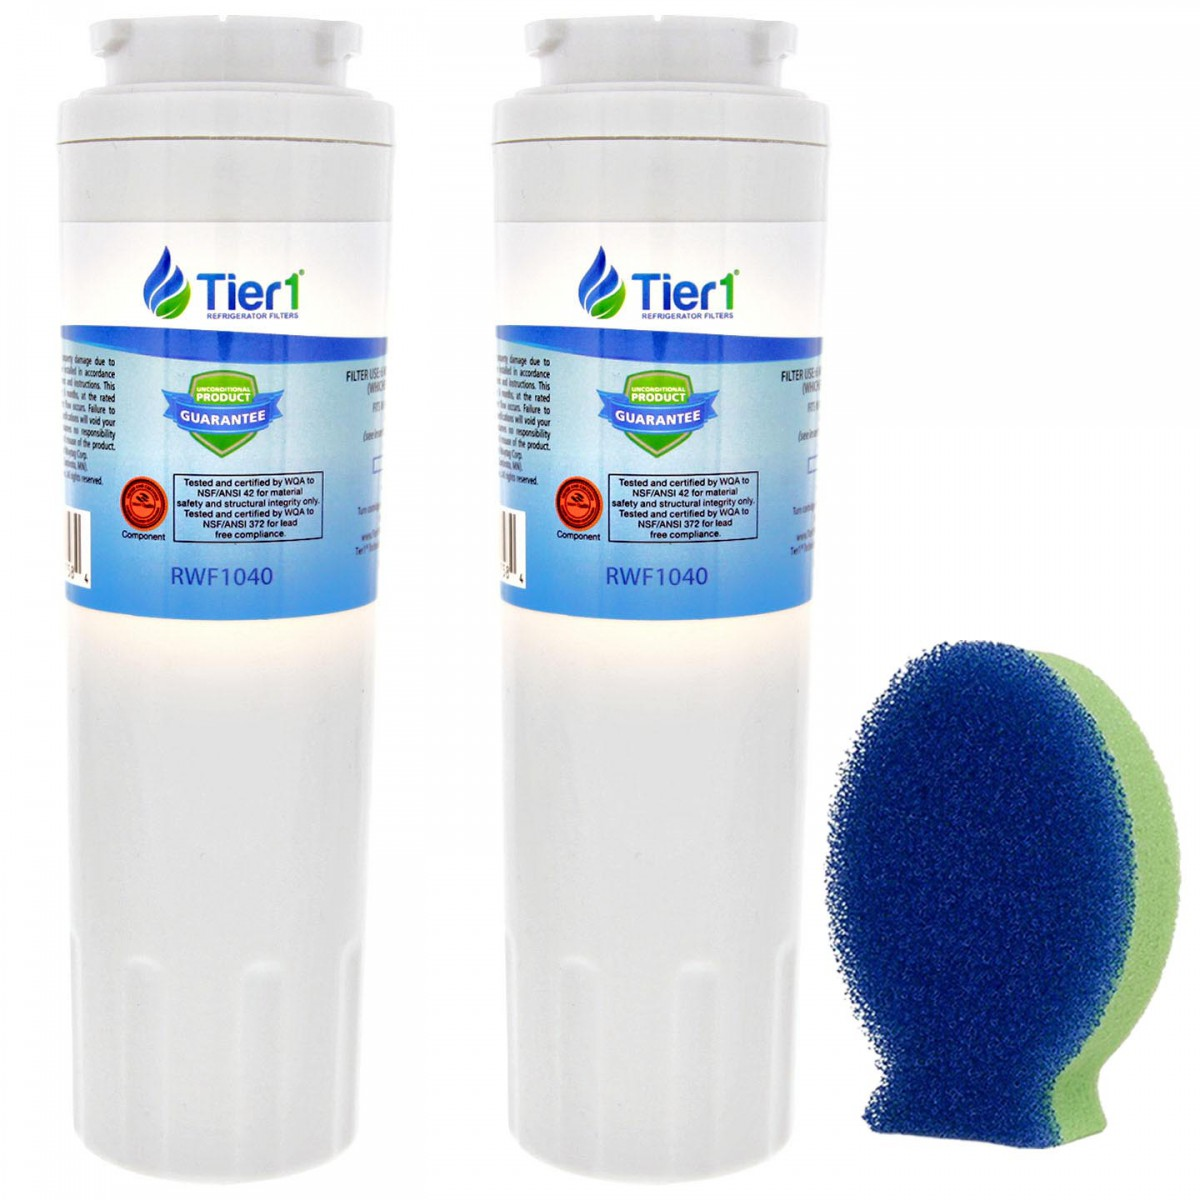 EDR4RXD1 EveryDrop UKF8001 Maytag Comparable Refrigerator Water Filter and  DishFish (2 Pack) by Tier1